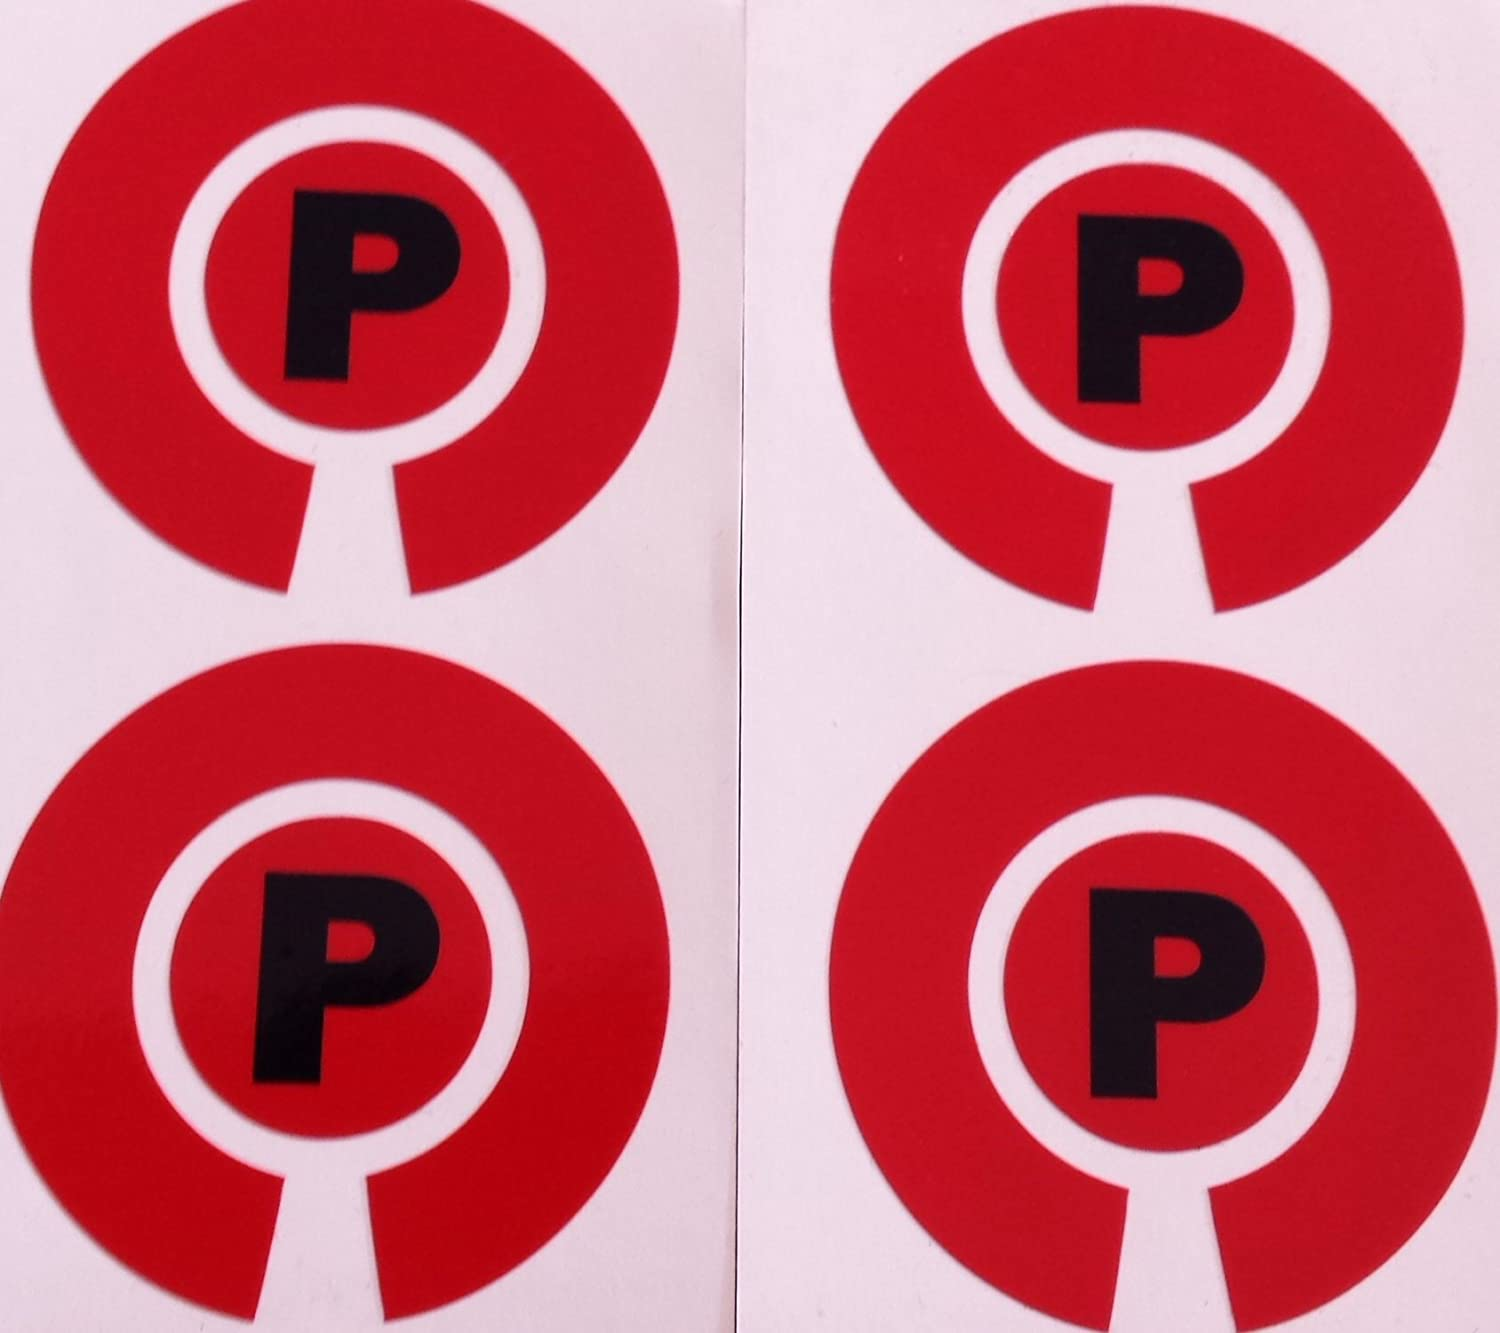 Crown Green Lawn Indoor Bowls Adhesive Lettered Coloured Marker Labels Set of 4 Red, P